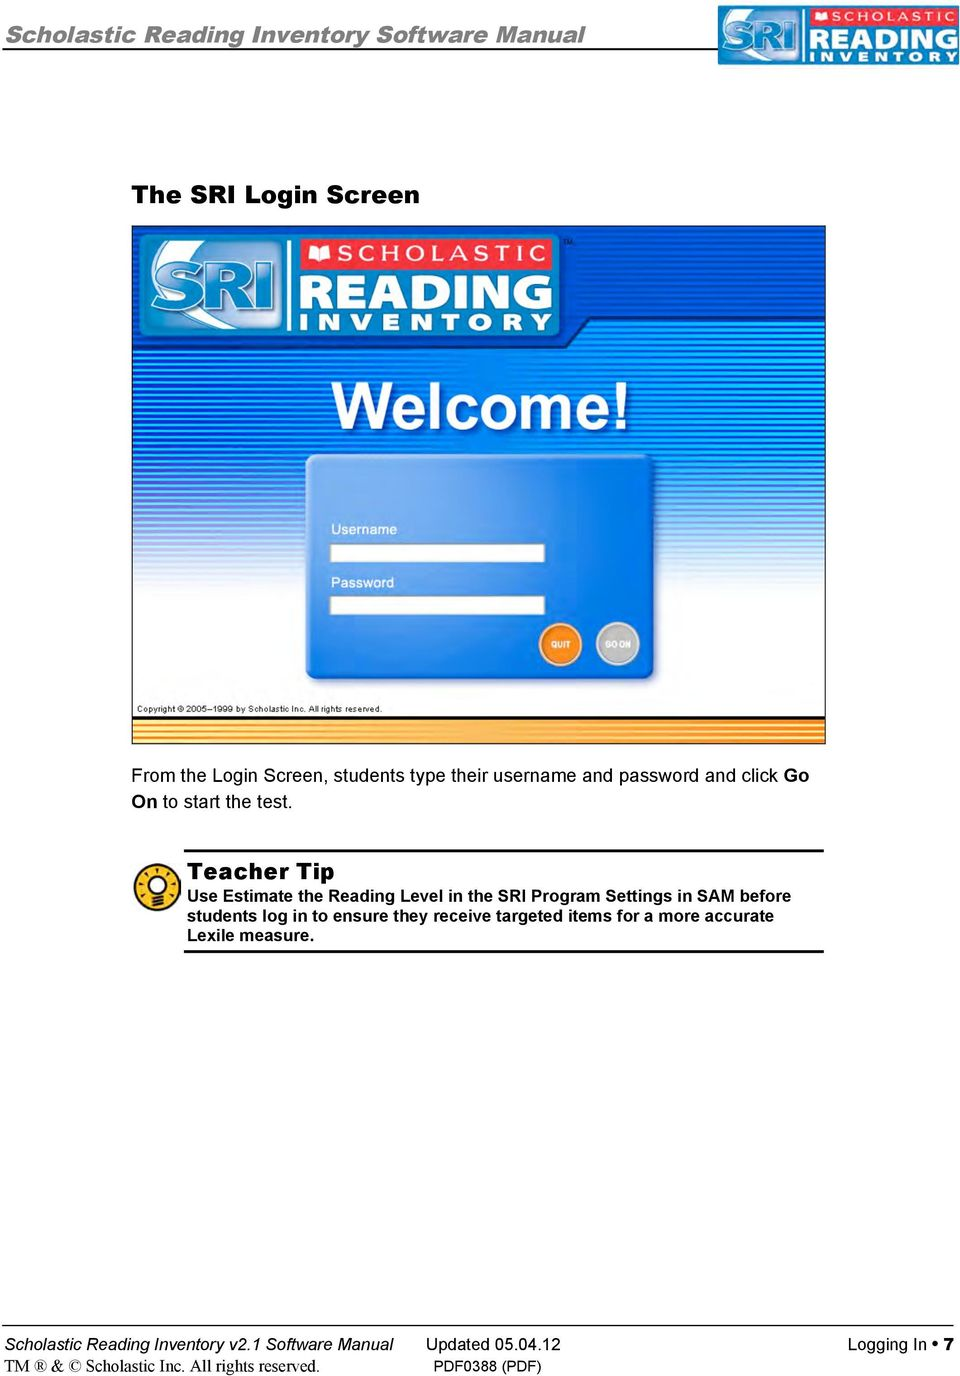 Teacher Tip Use Estimate the Reading Level in the SRI Program Settings in SAM before students